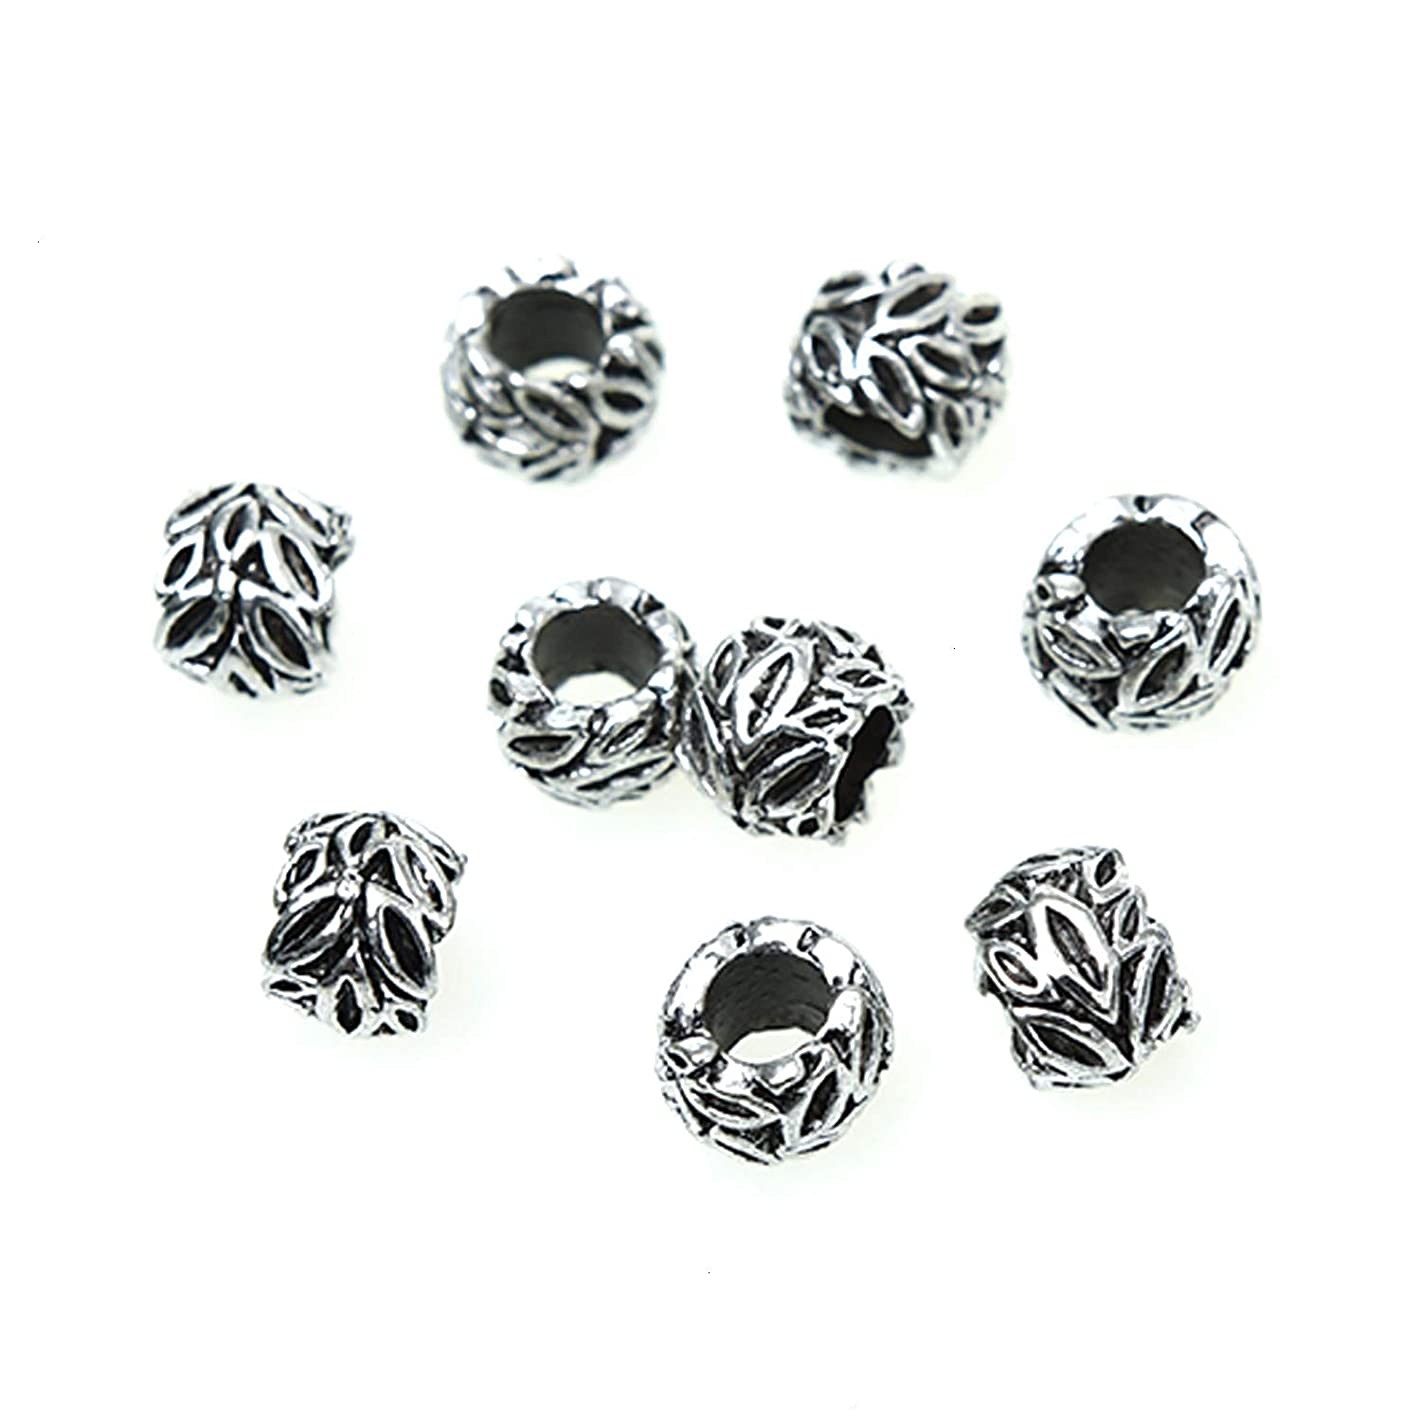 Monrocco 100 Pack Antique Silver Metal Leaf Beads Large Hole Rondelle Spacer Beads European Bracelet Charm Beads for Jewelry Making